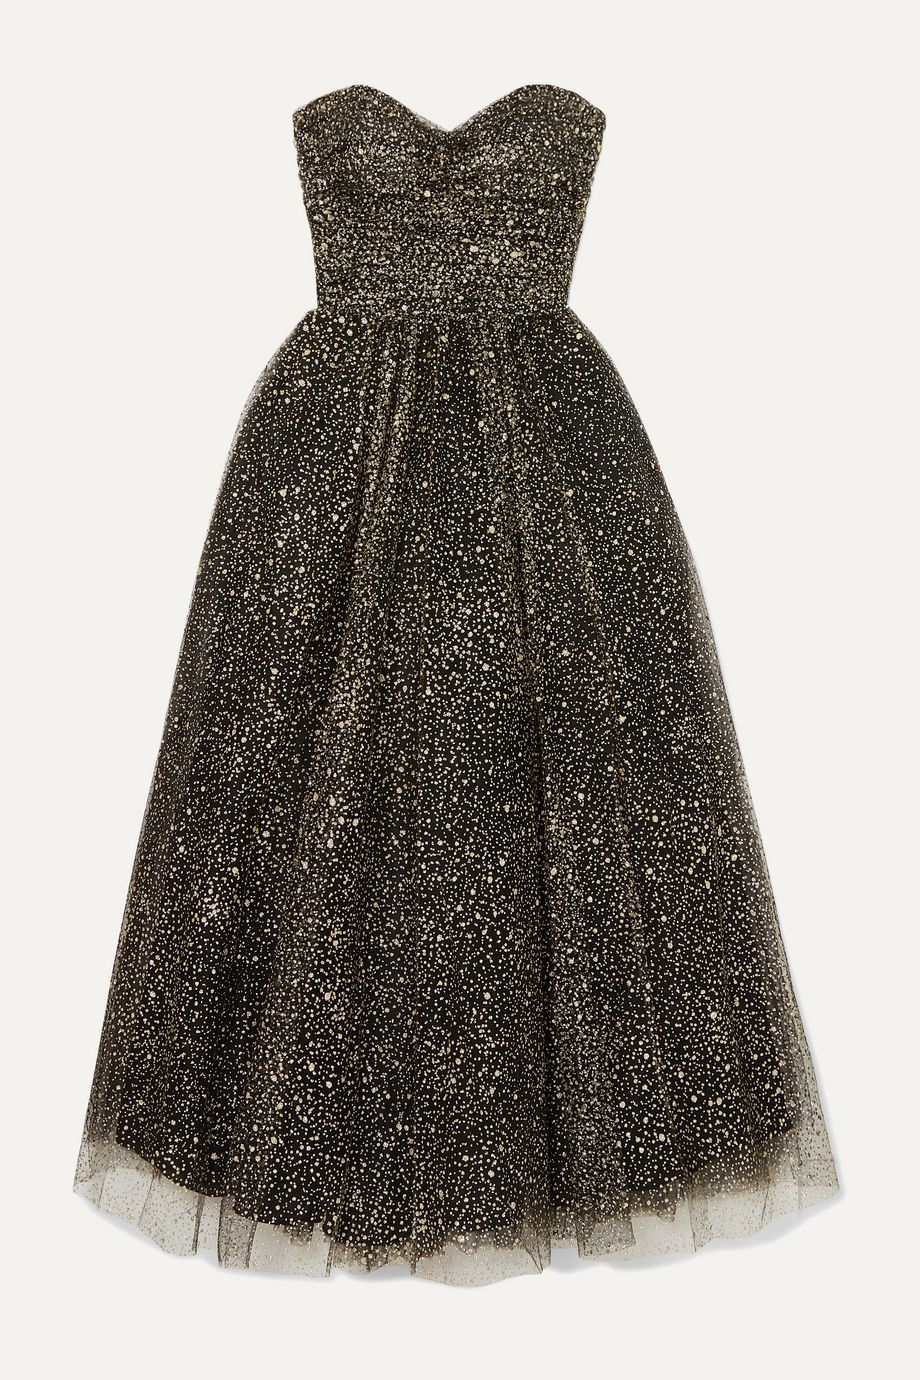 Monique Lhuillier Brie strapless ruched glittered tulle gown